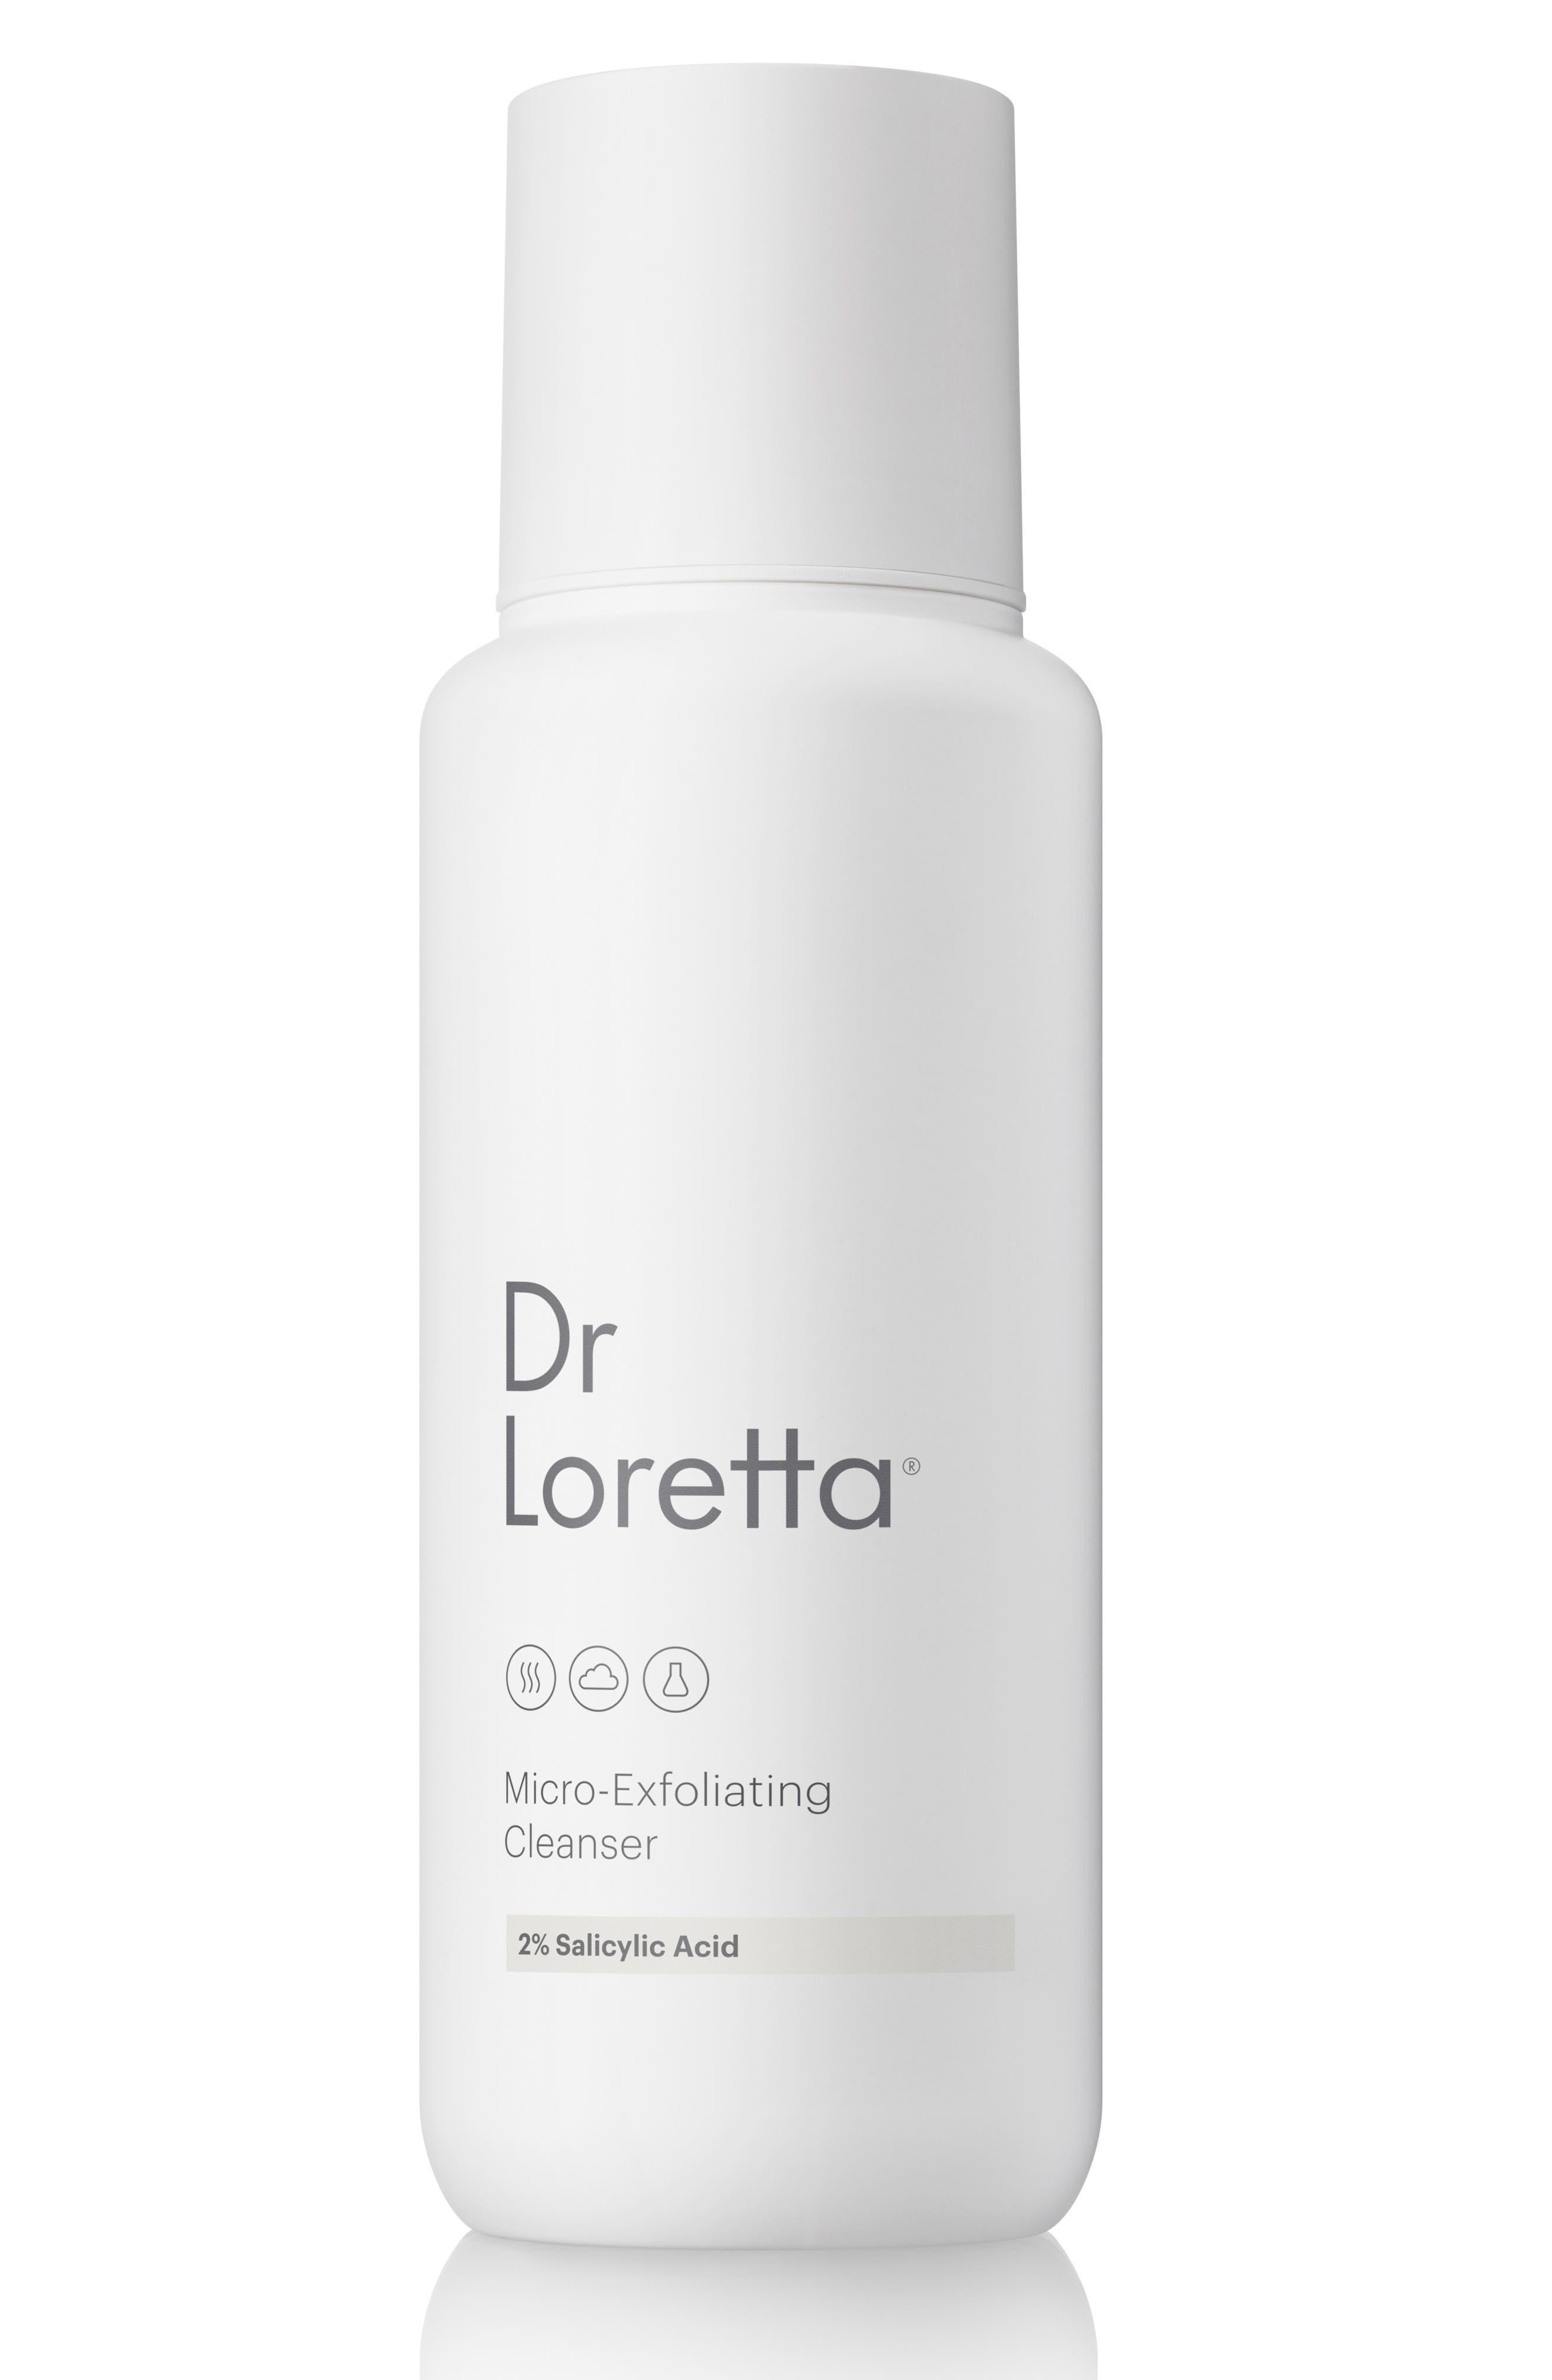 Micro-Exfoliating Cleanser at Nordstrom